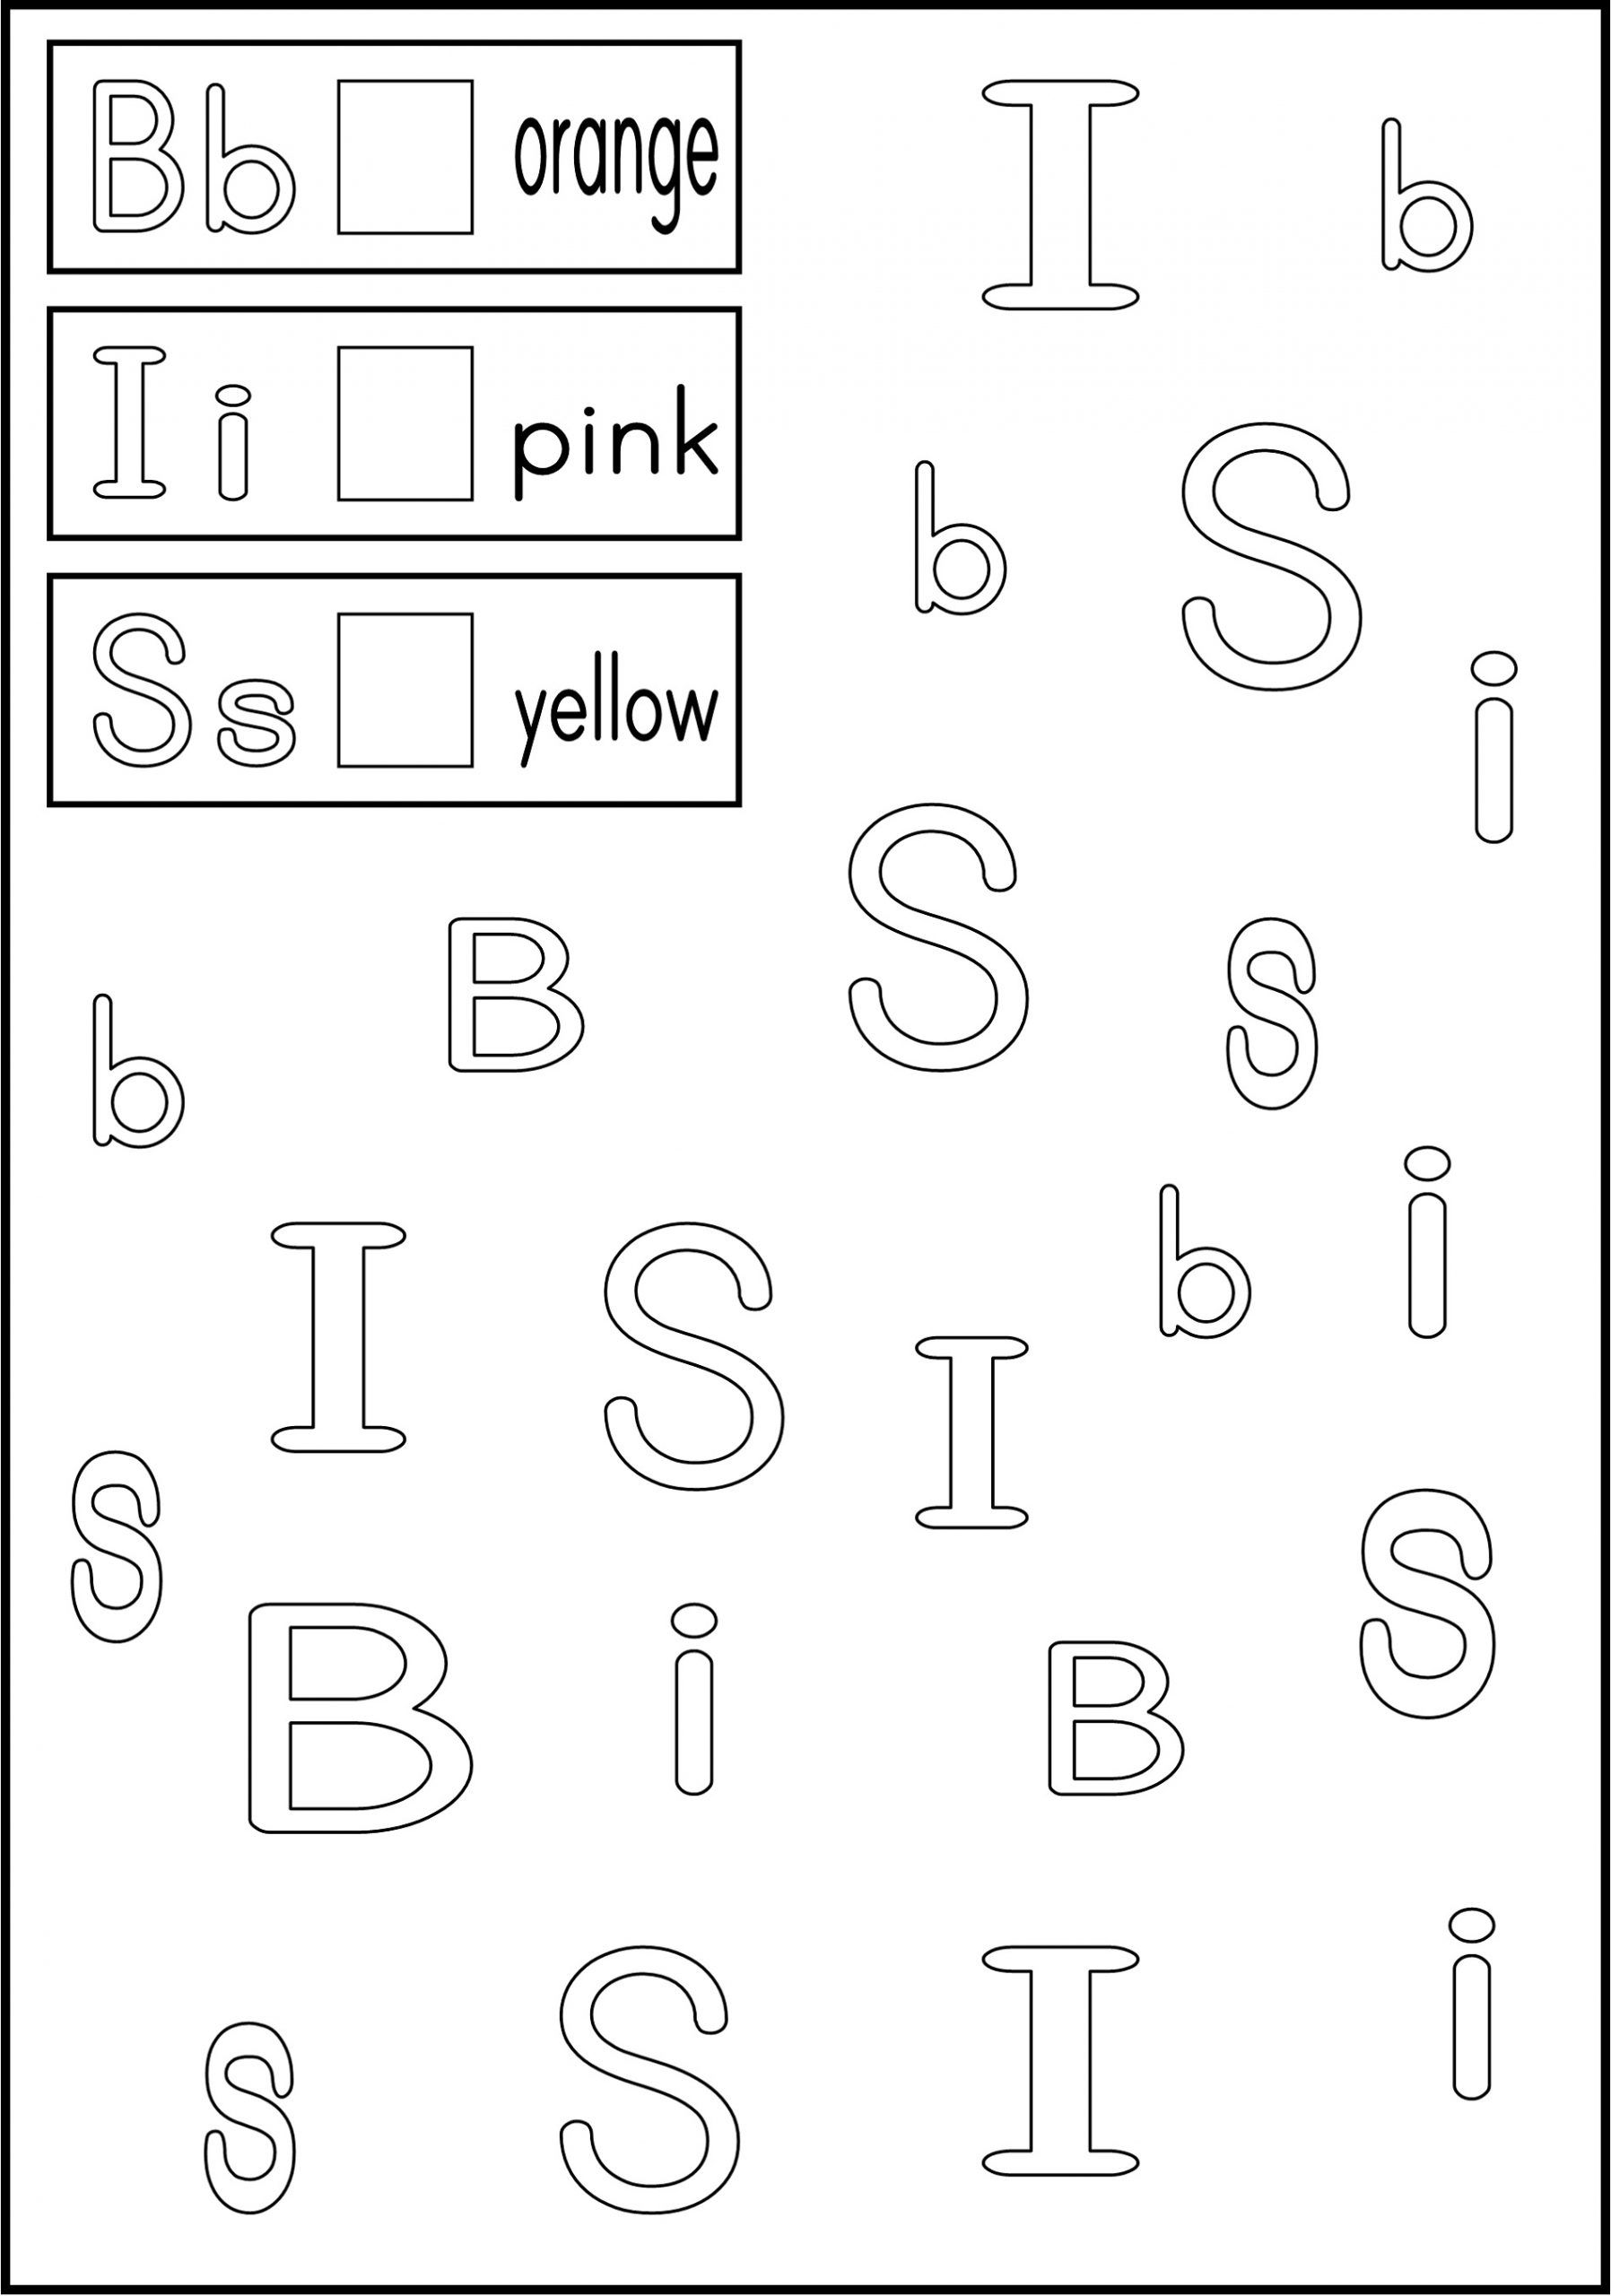 Free Abc Worksheets For Pre K In 2021 Letter Worksheets Kindergarten Alphabet Worksheets Alphabet Recognition [ 2560 x 1796 Pixel ]